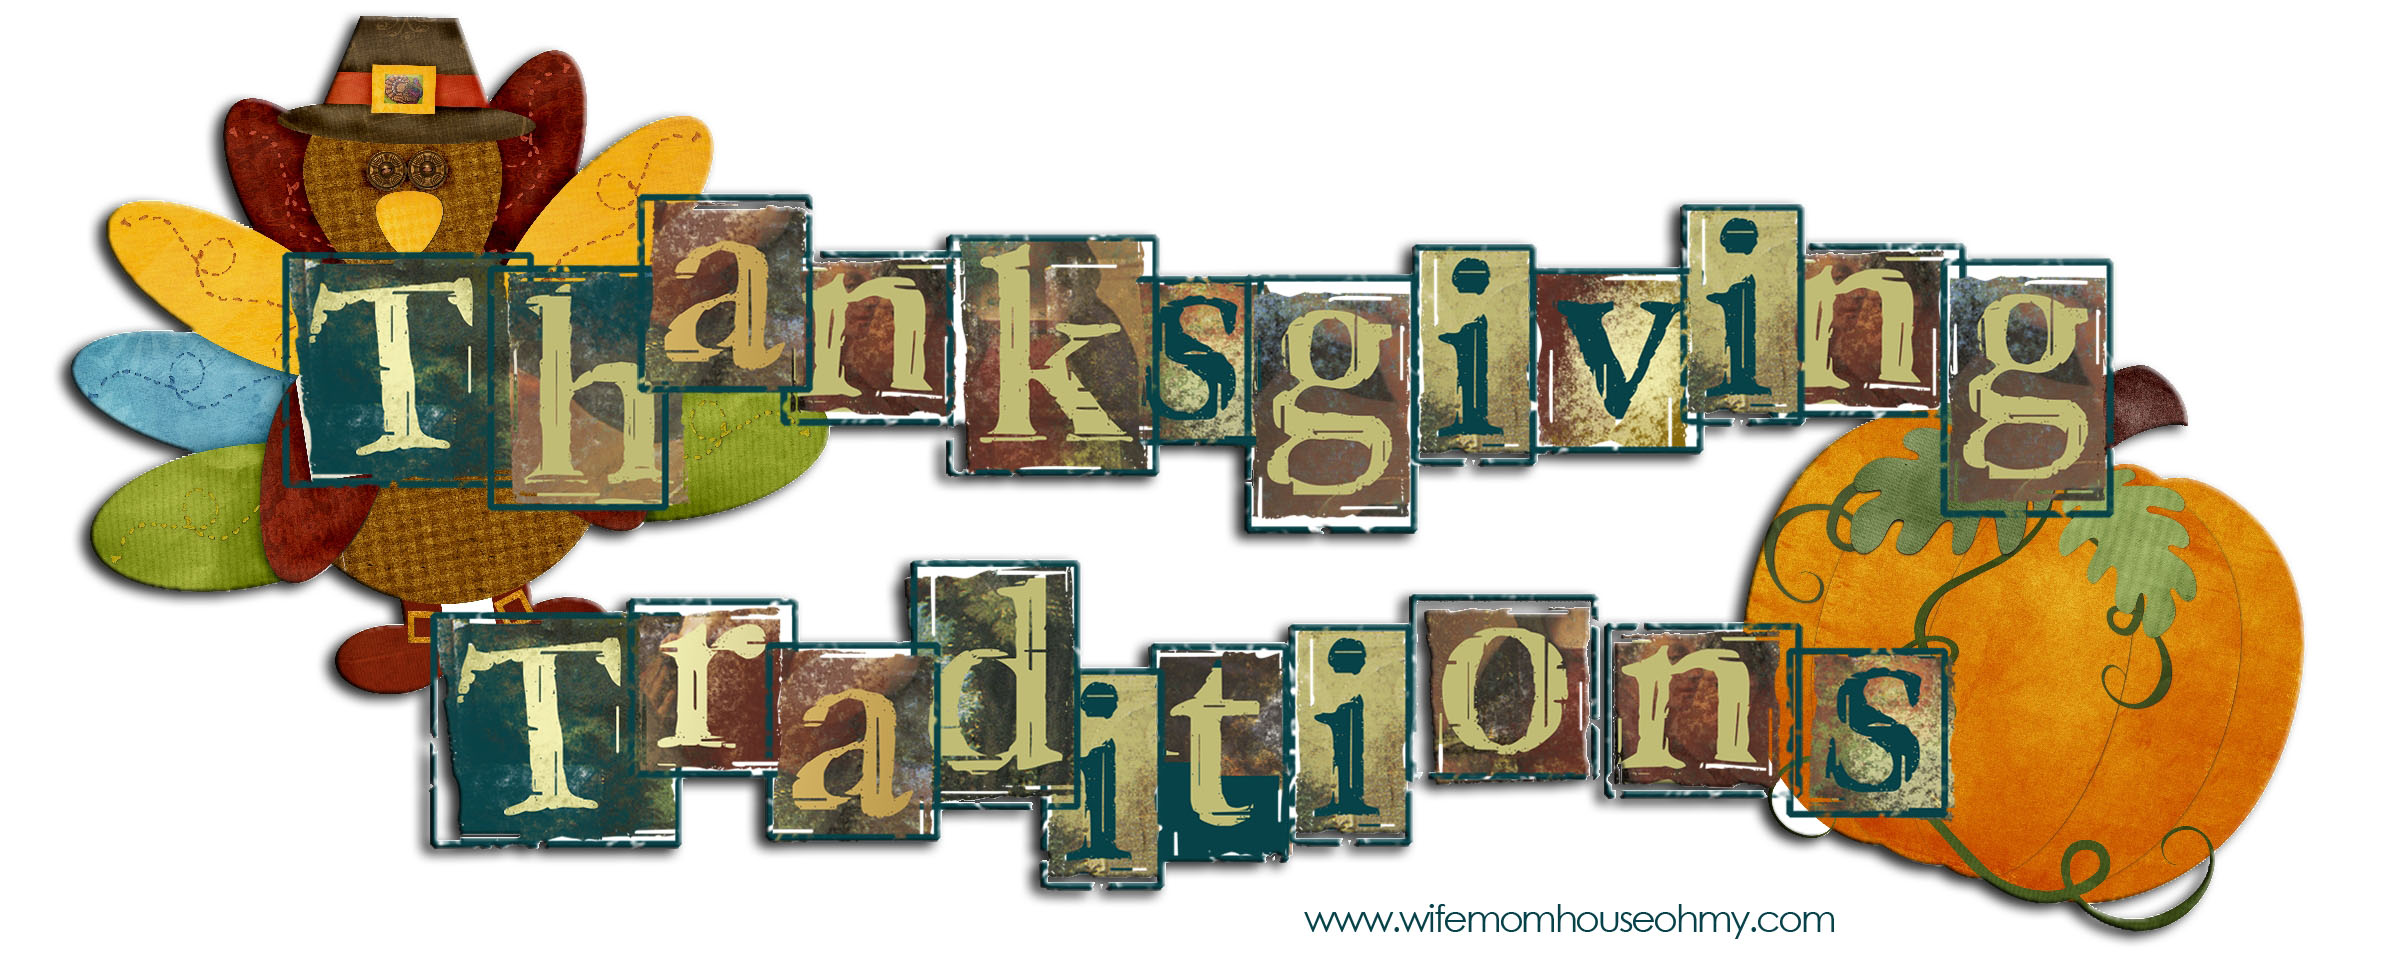 Thanksgiving Traditions www.wifemomhouseohmy.com